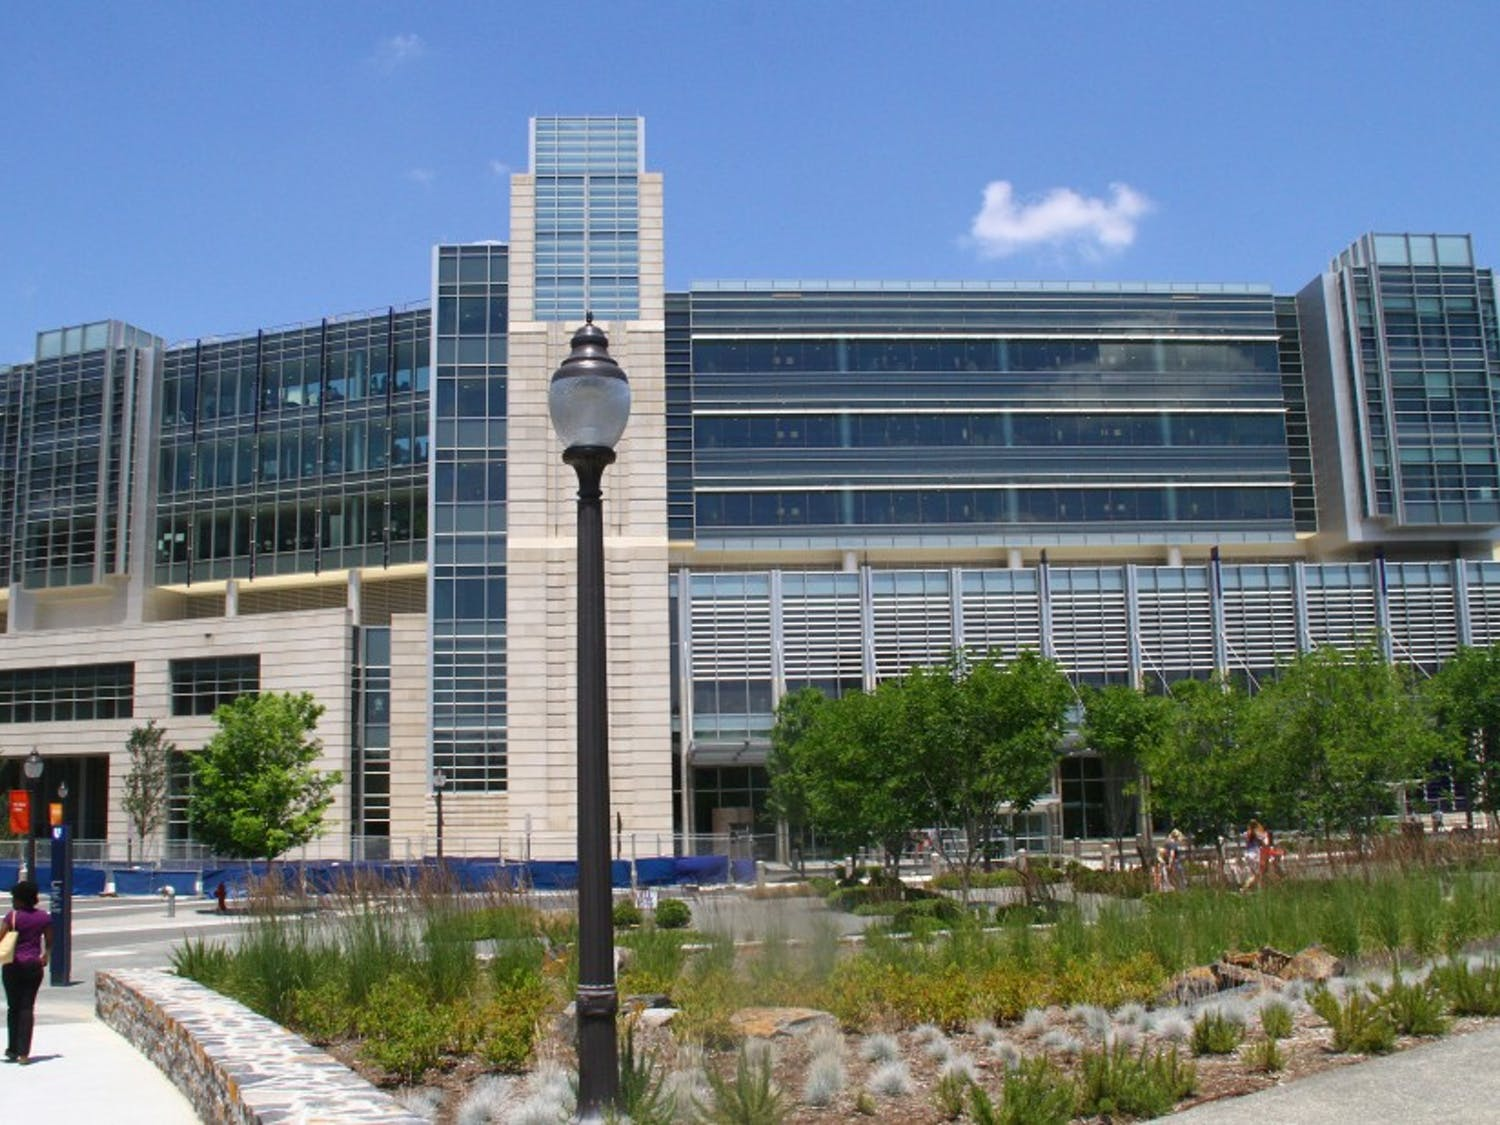 Blake Wilson serves as the co-director of the Duke Hearing Center, which is housed within Duke Hospital, pictured above, and is home to research and development of treatments for hearing loss.